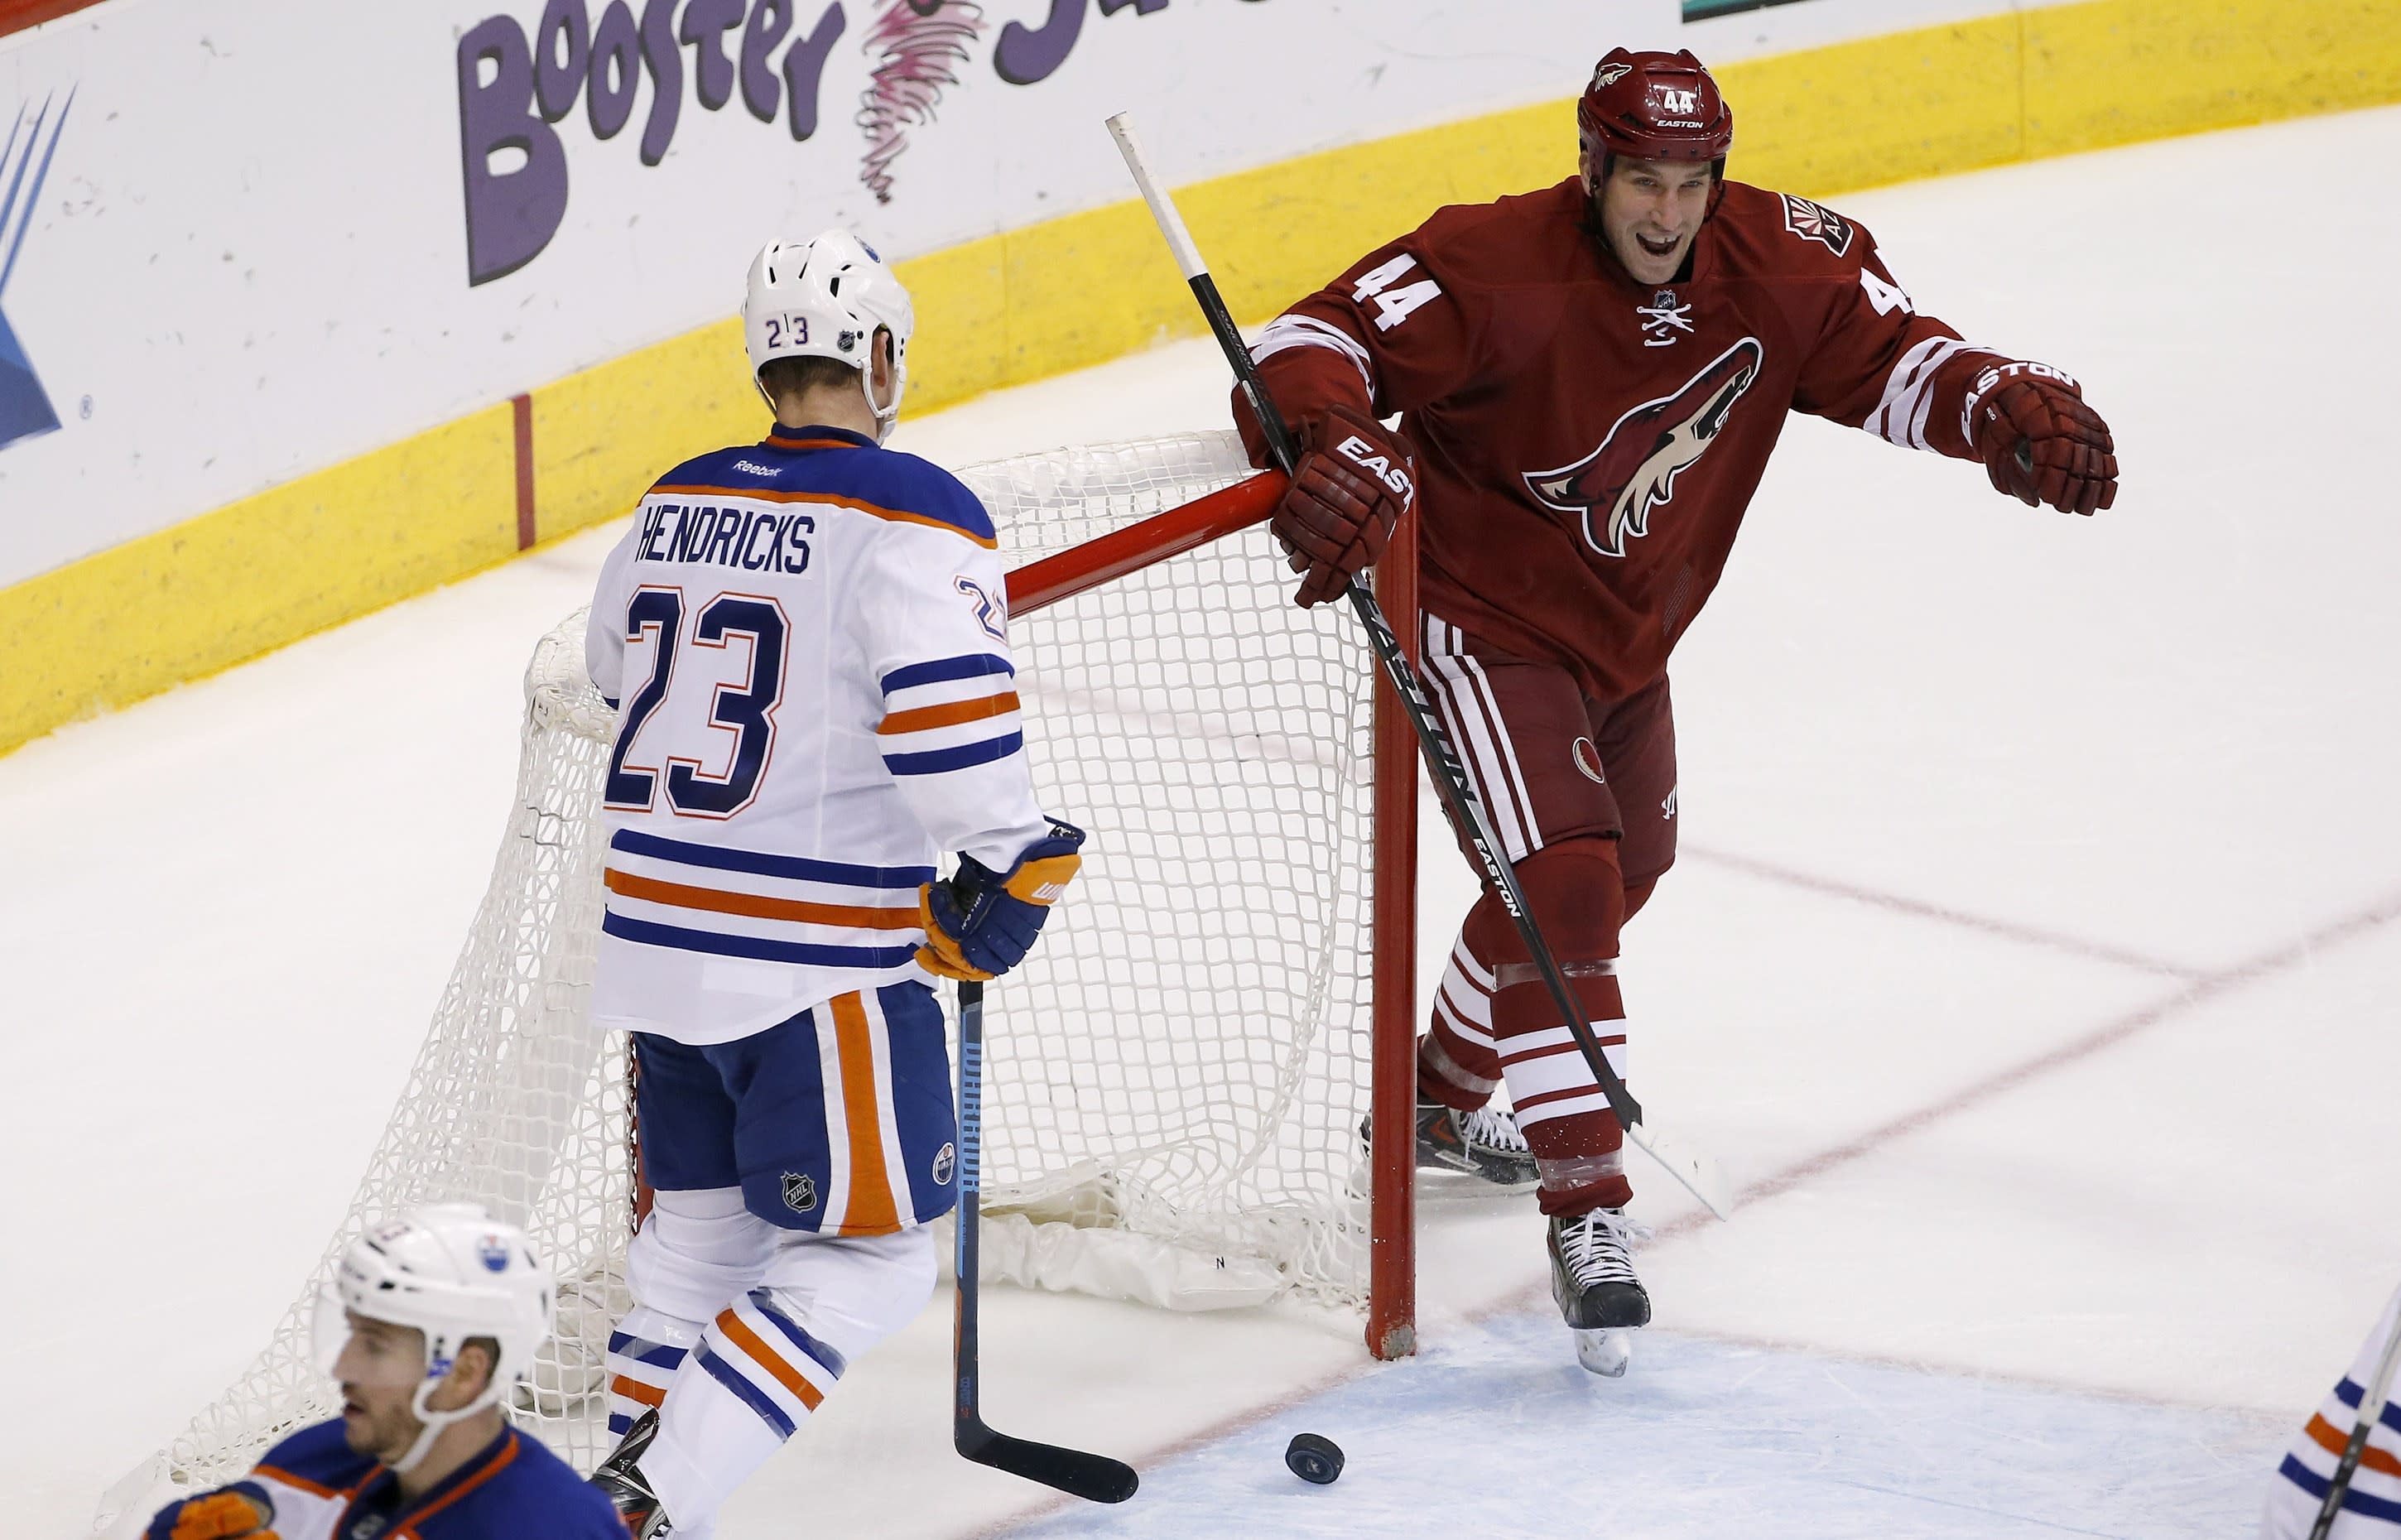 Coyotes pull out 2-1 win over Oilers in OT